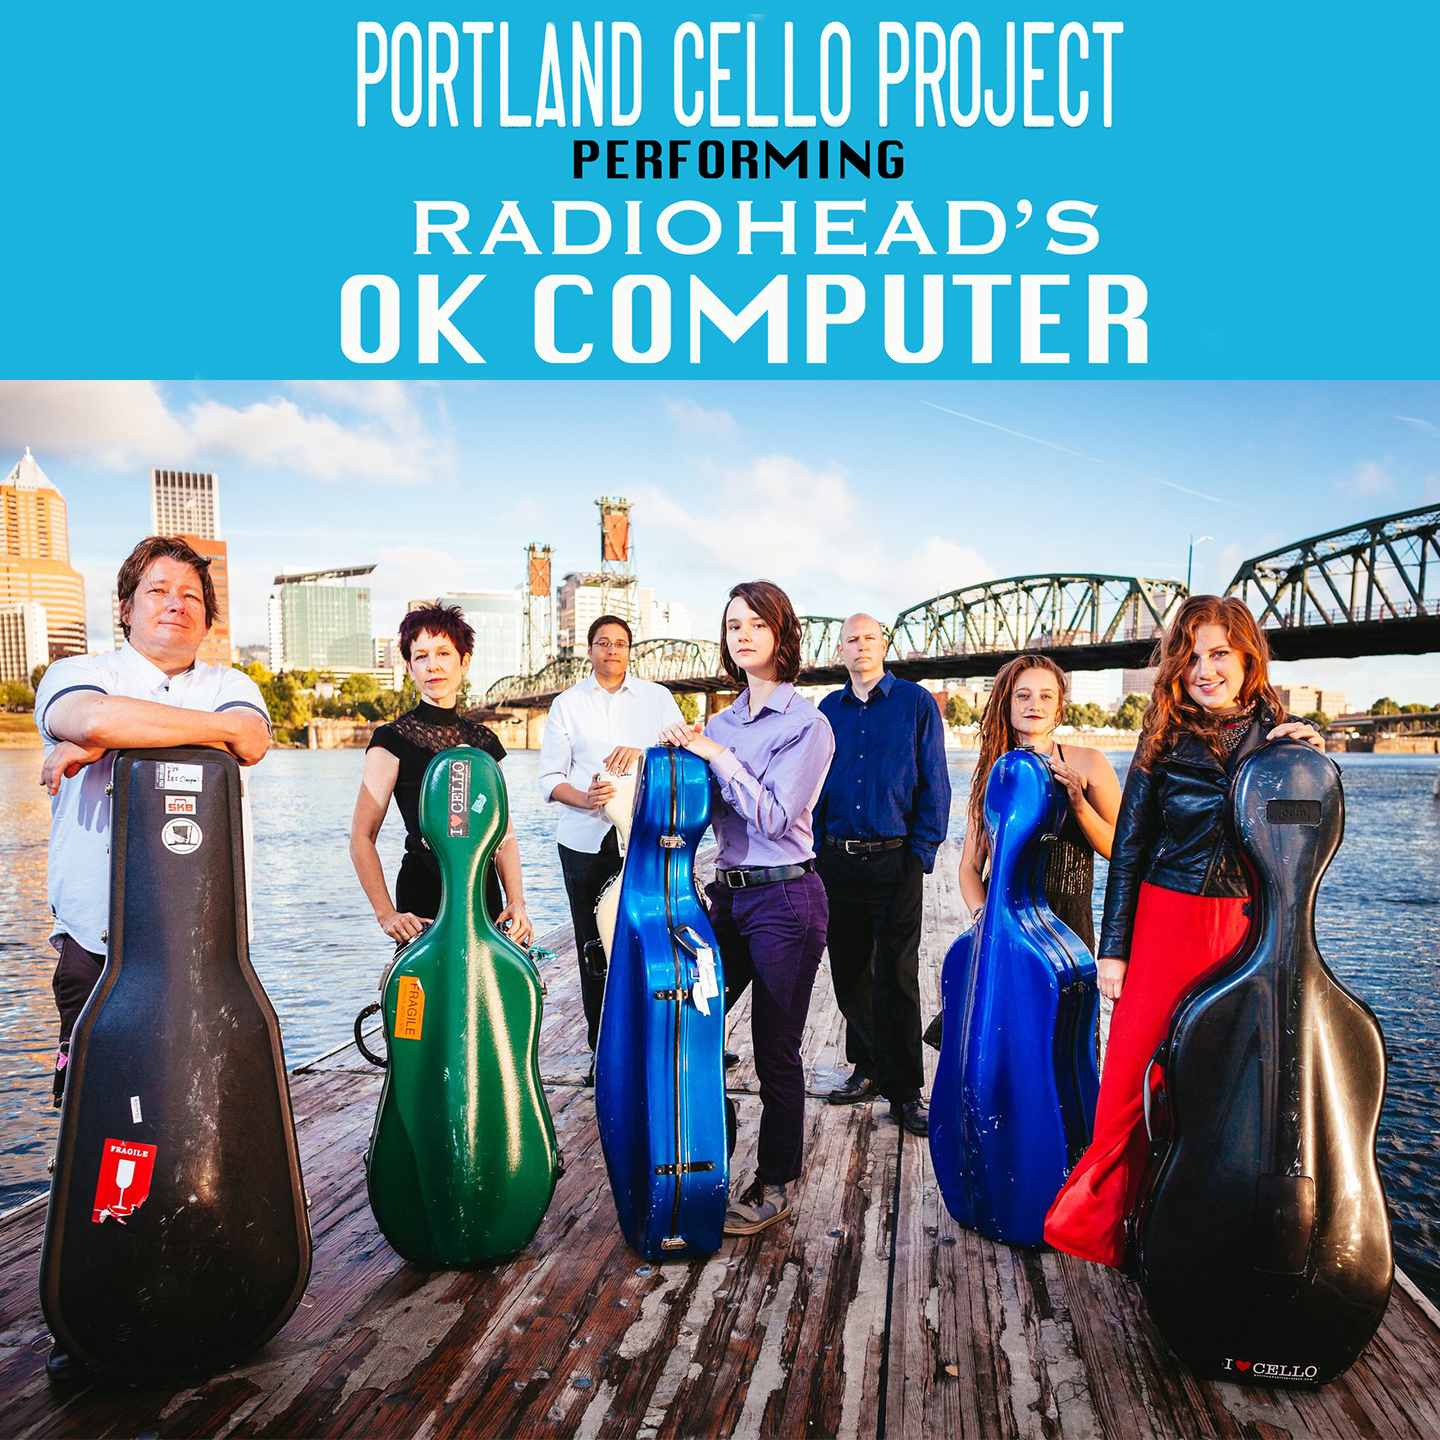 Portland Cello Project performing Radiohead's OK Computer